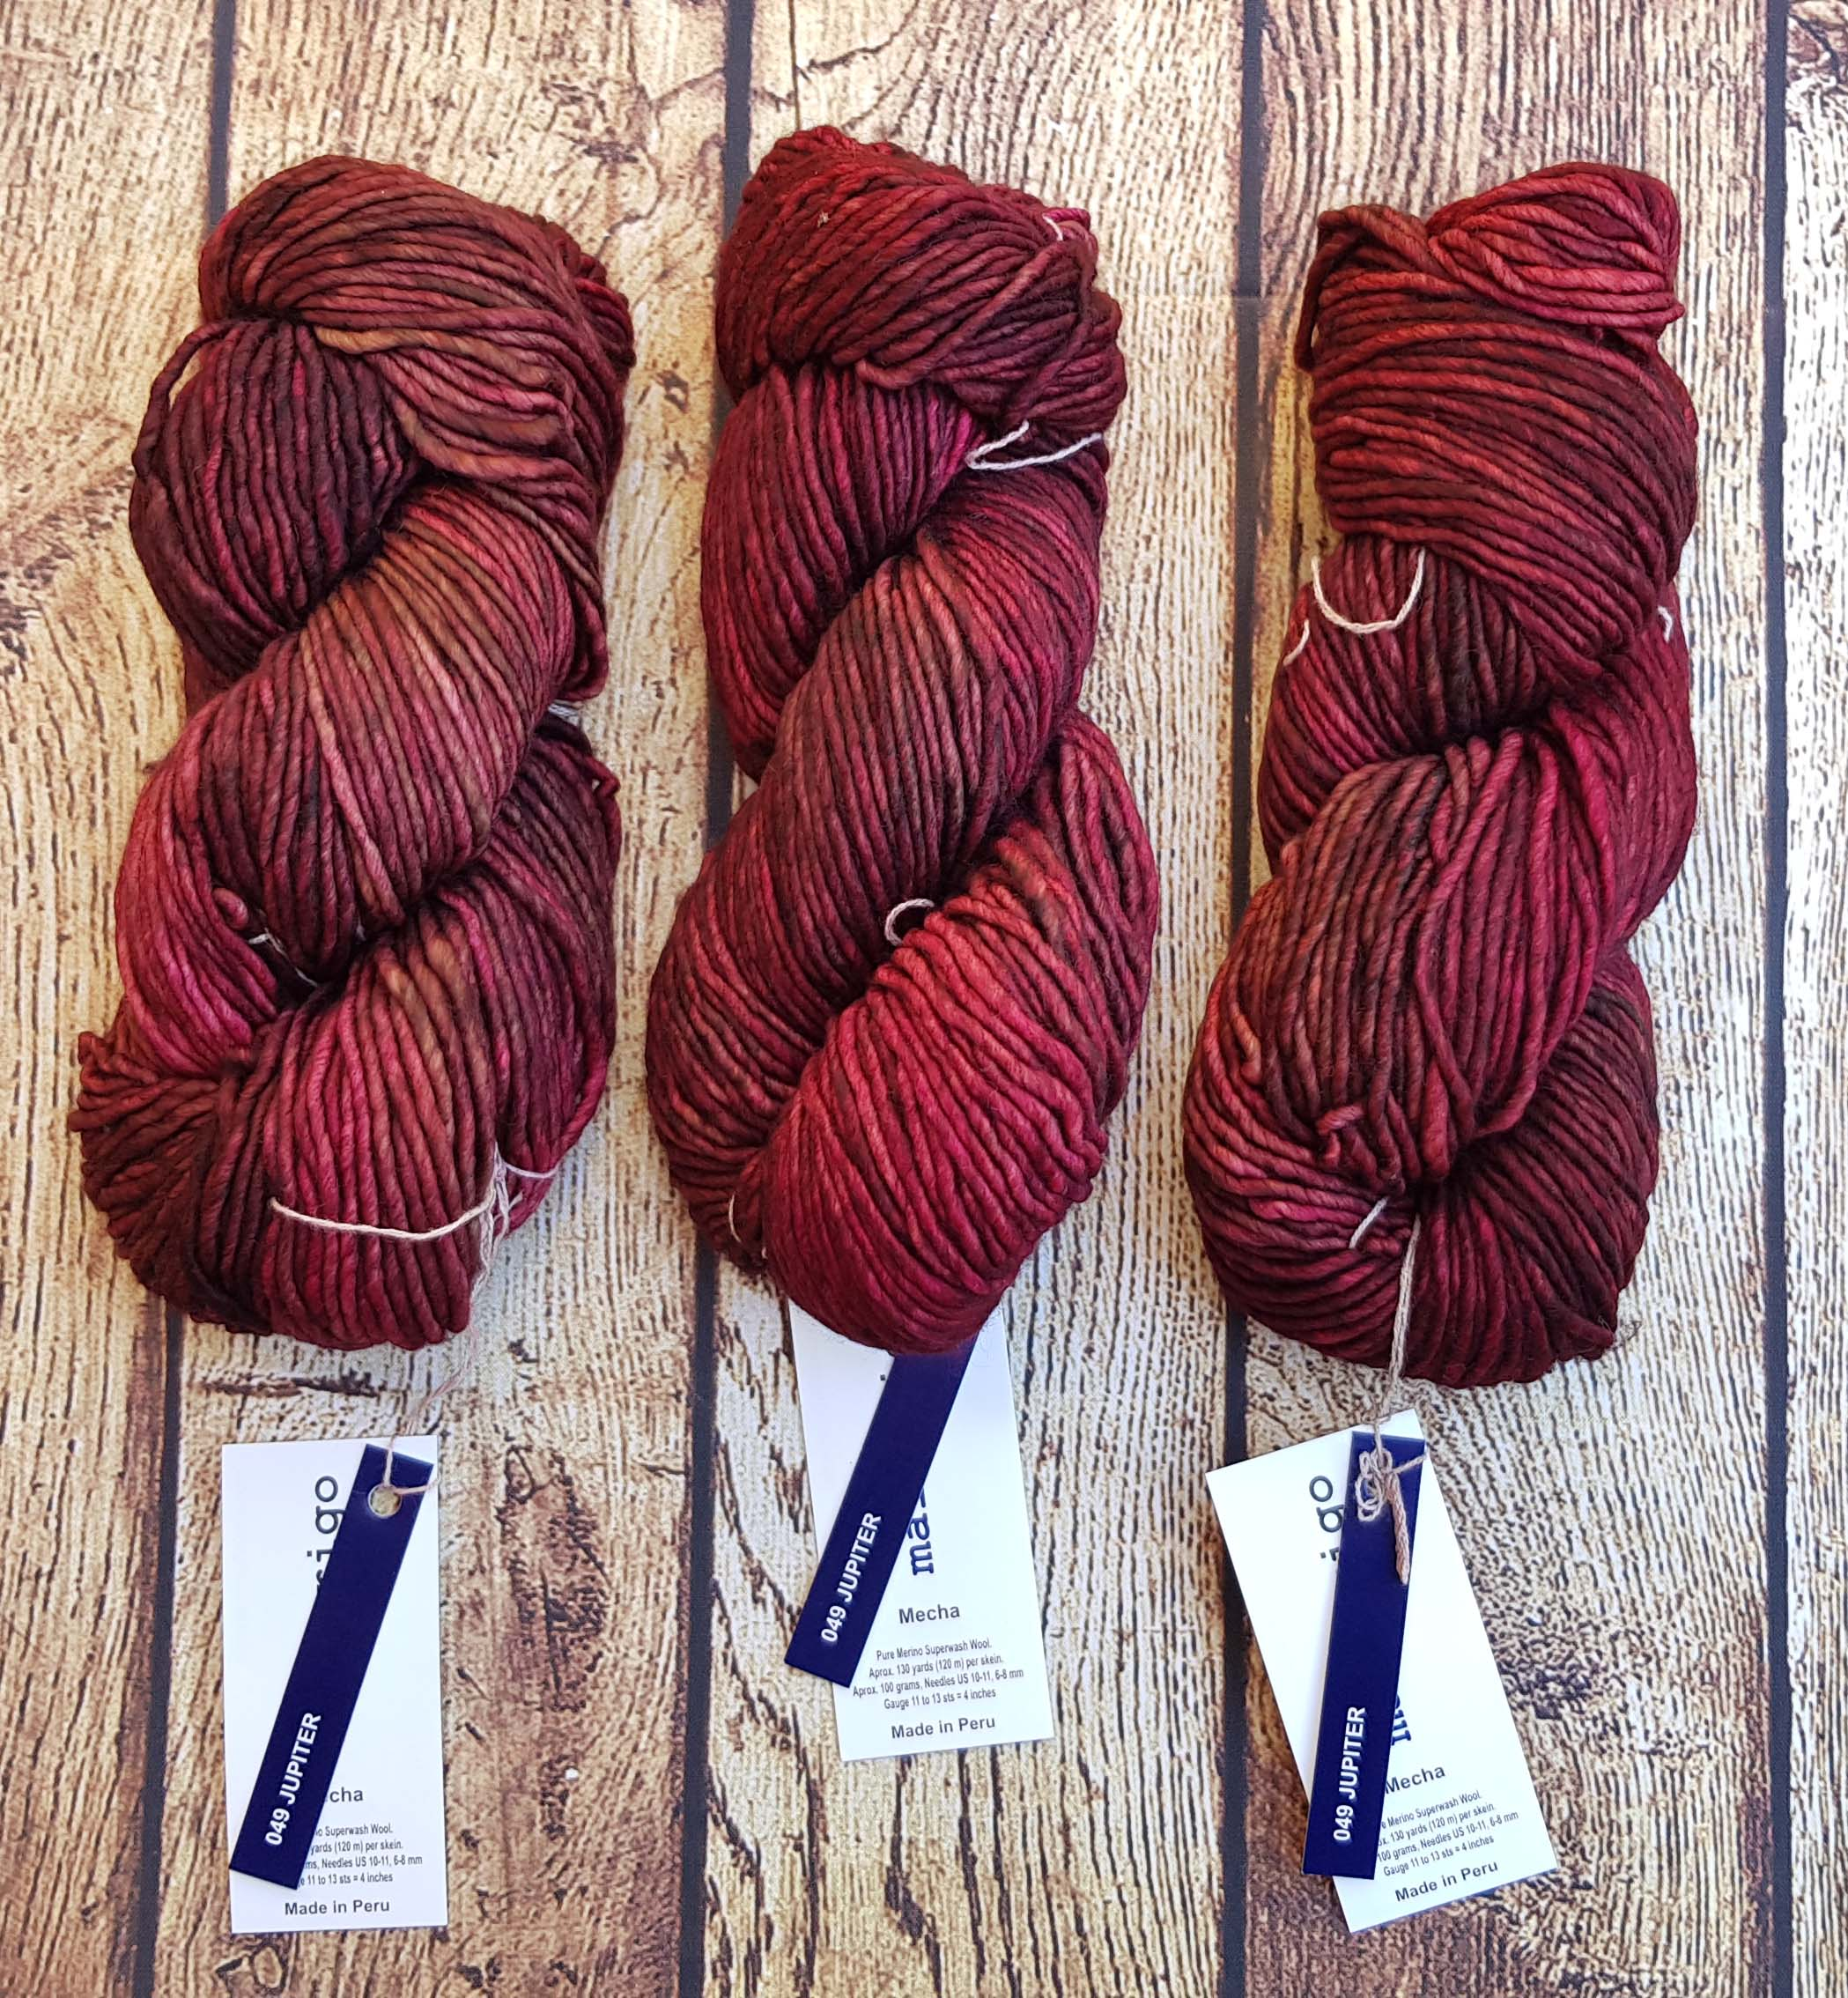 Bordovo vínovo červená Mecha Malabrigo - 049 Jupiter- 100% Superwash merino vlna